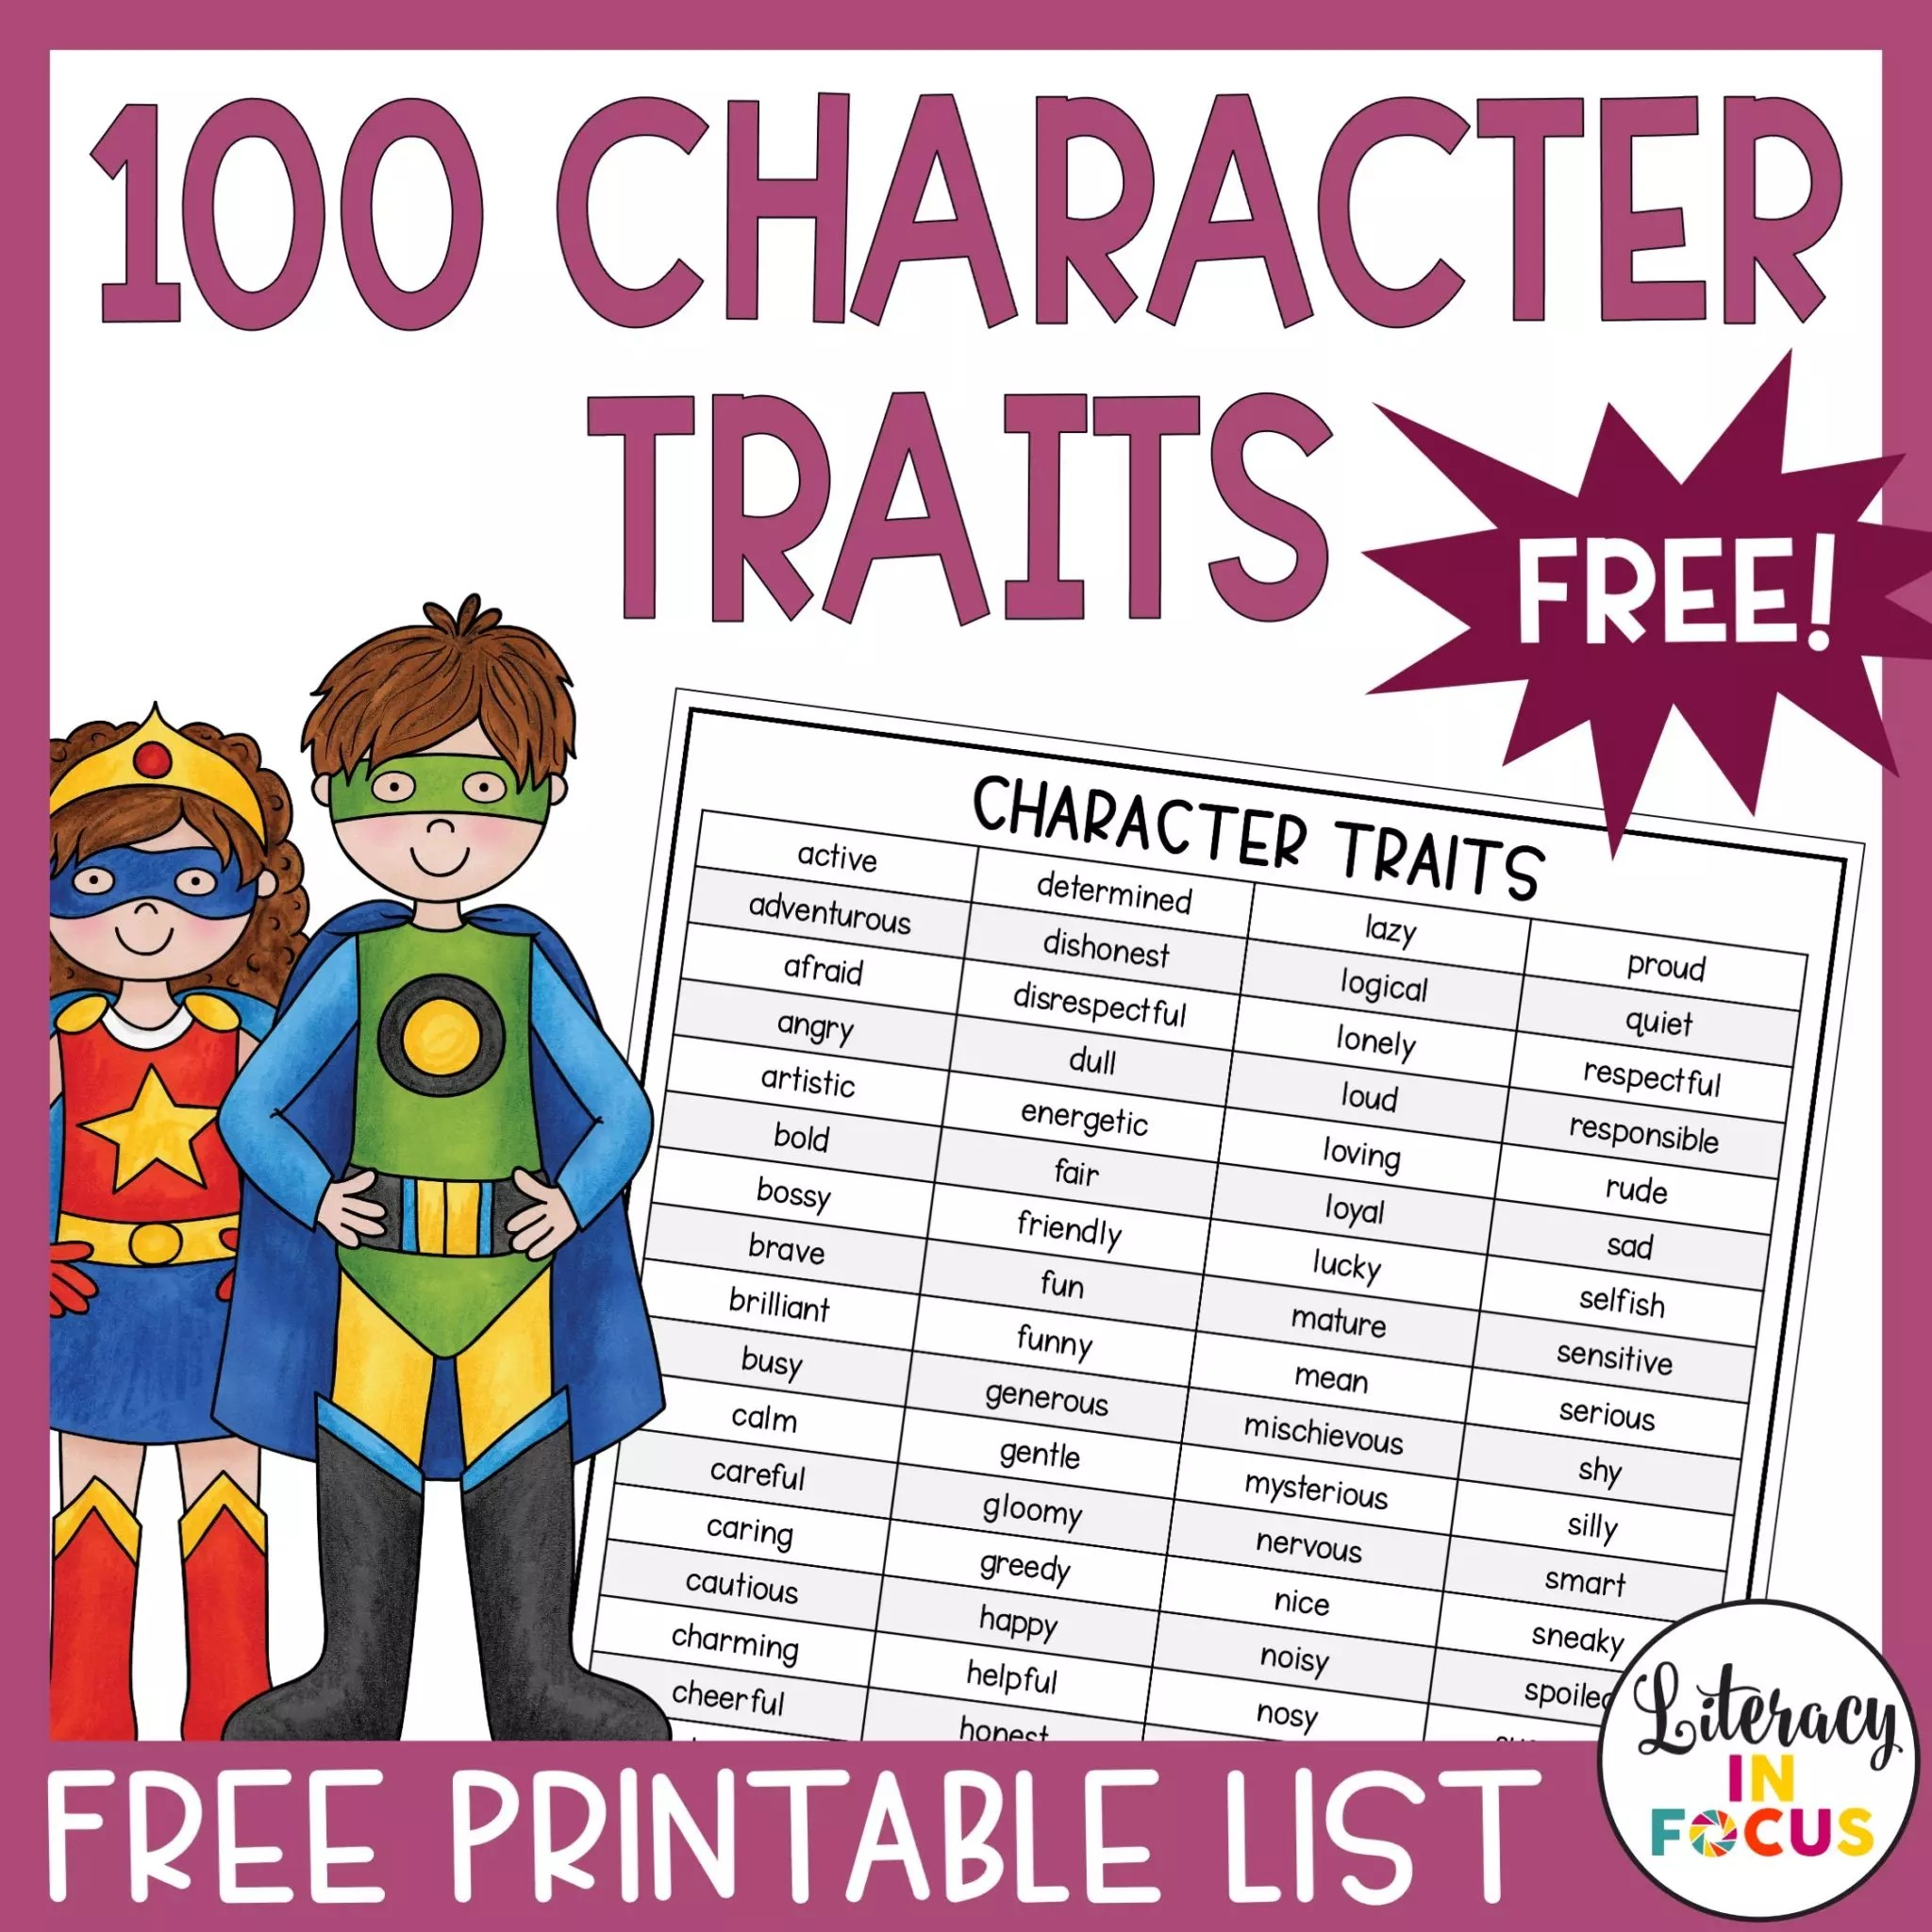 100 Character Traits List Free Printable